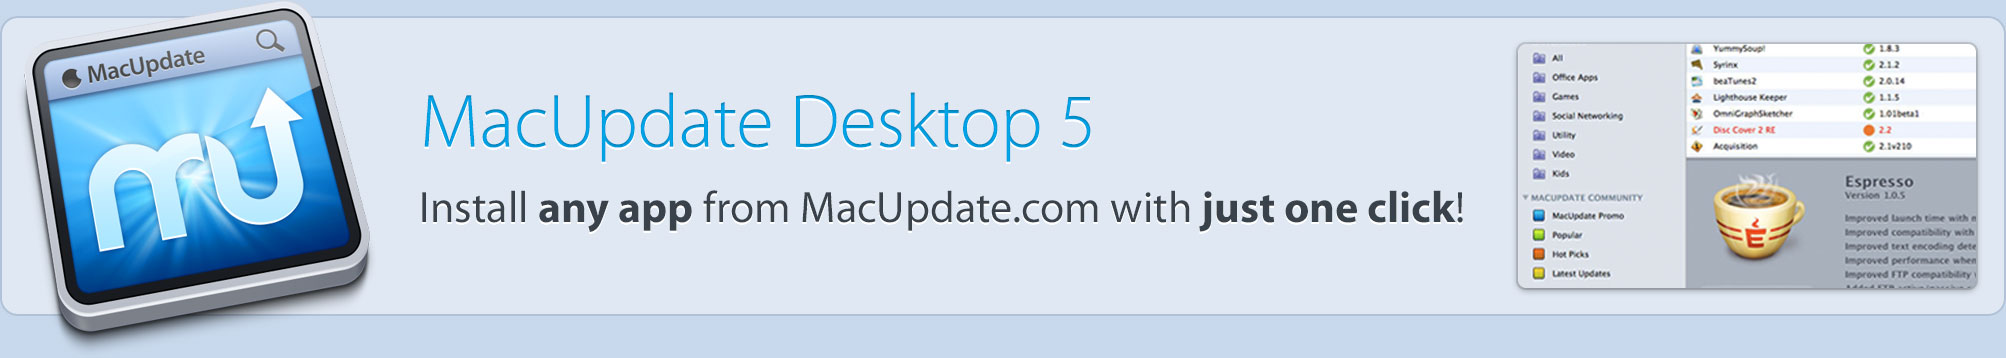 install any app on our site and keep your Mac OS X apps and software updated and secure with MacUpdate Desktop.